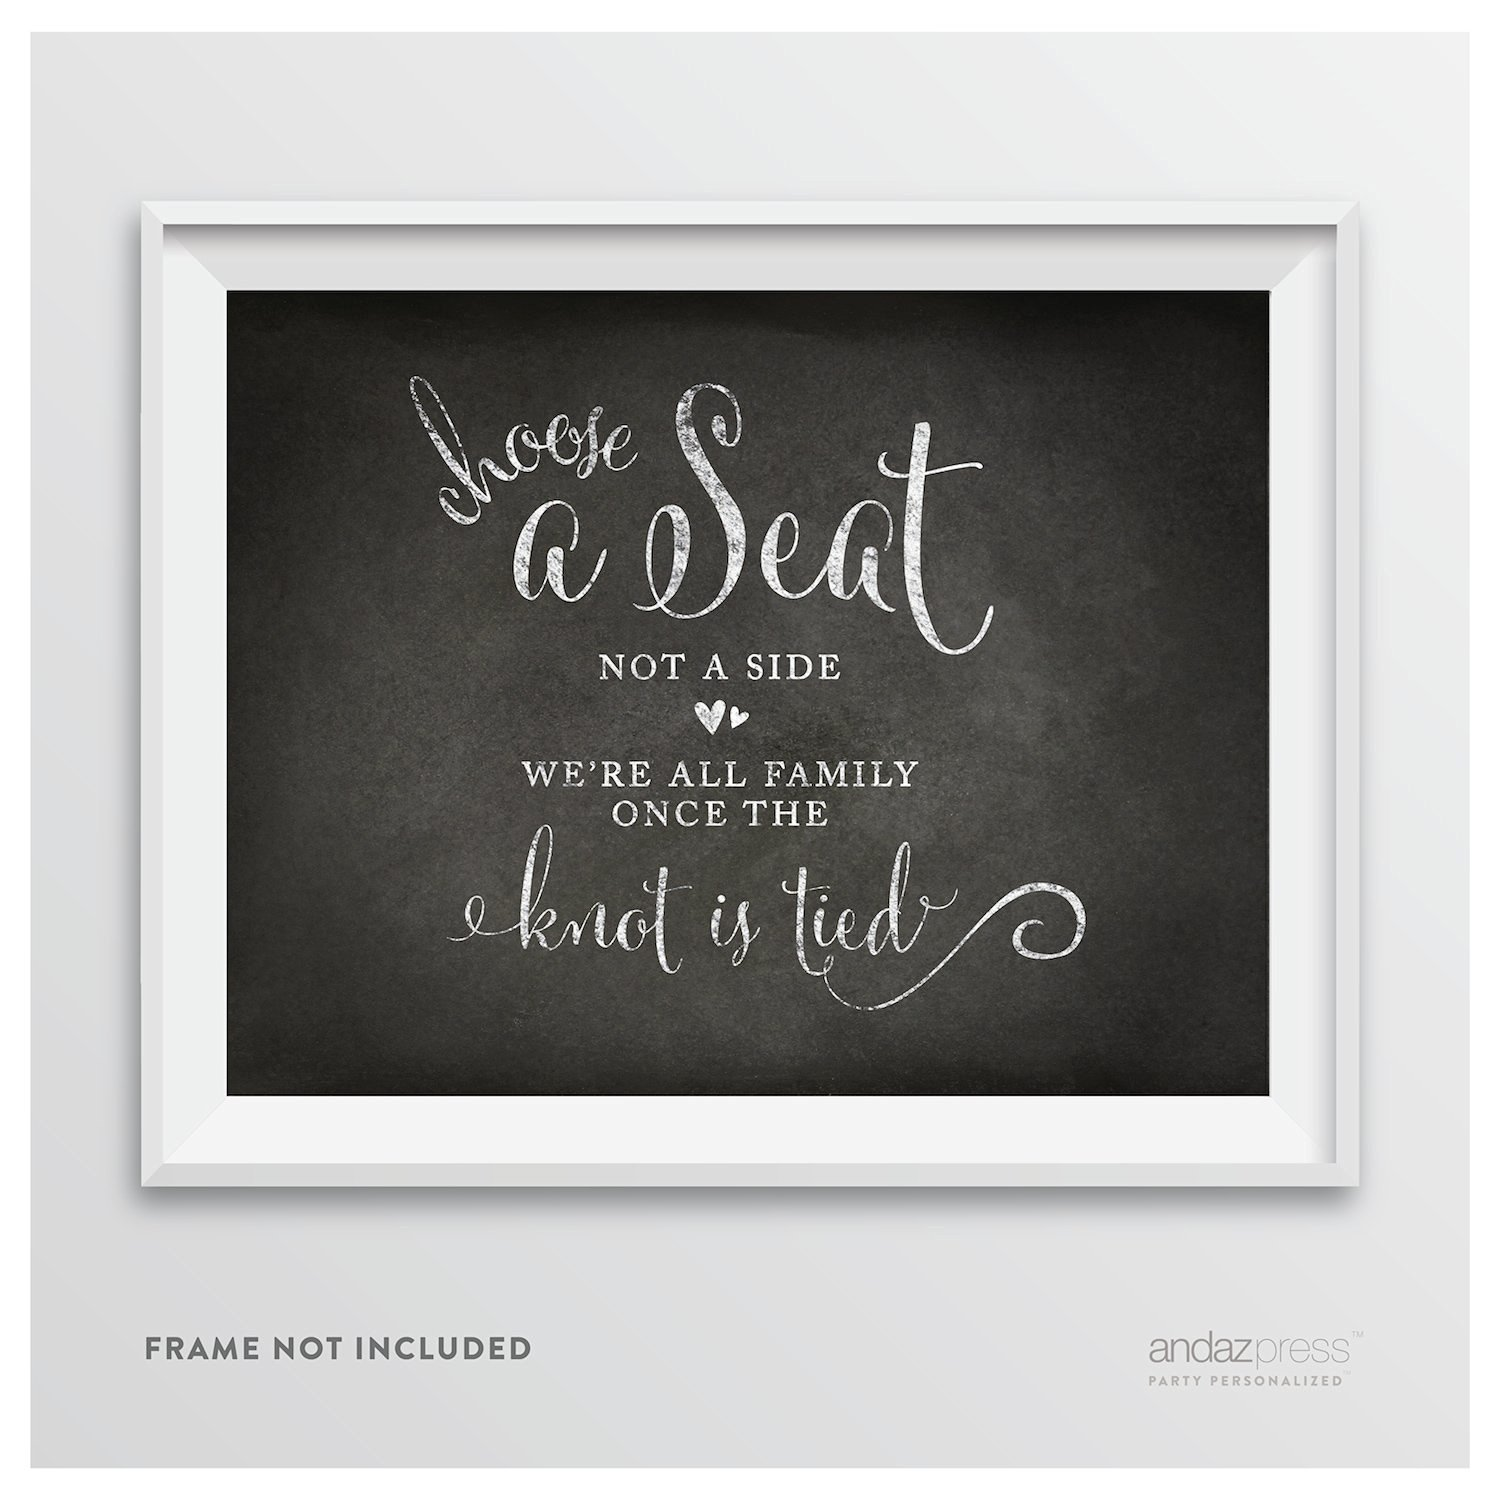 Andaz Press Wedding Party Signs, Vintage Chalkboard Print, 8.5-inch x 11-inch, Choose a Seat, Not a Side, We're all Family Once the Knot is Tied, 1-Pack